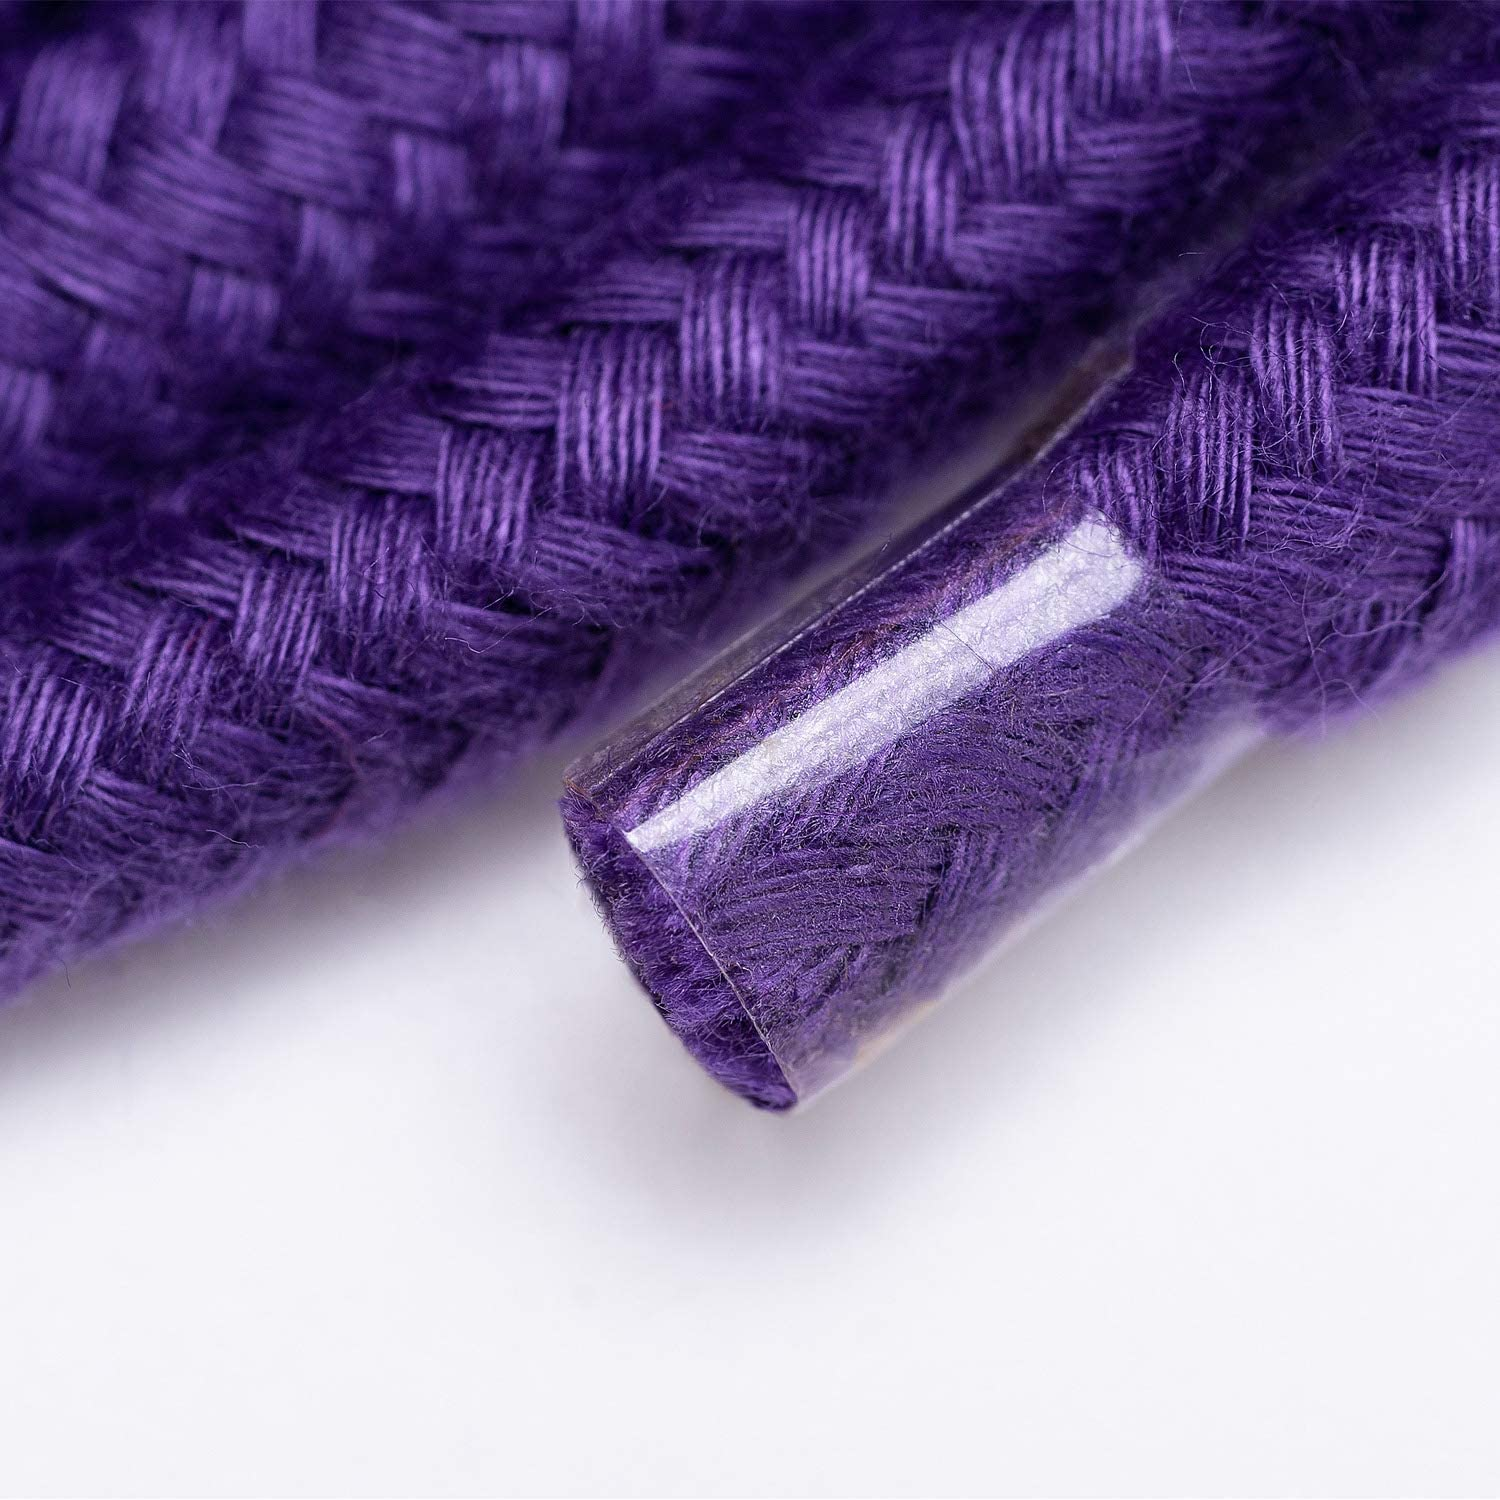 Soft Cotton Rope 32 feet//10m 8mm 2 Pack of Purple 1//3 inch Diameter Twisted Braided Multi-Function Natural Utility Durable Long